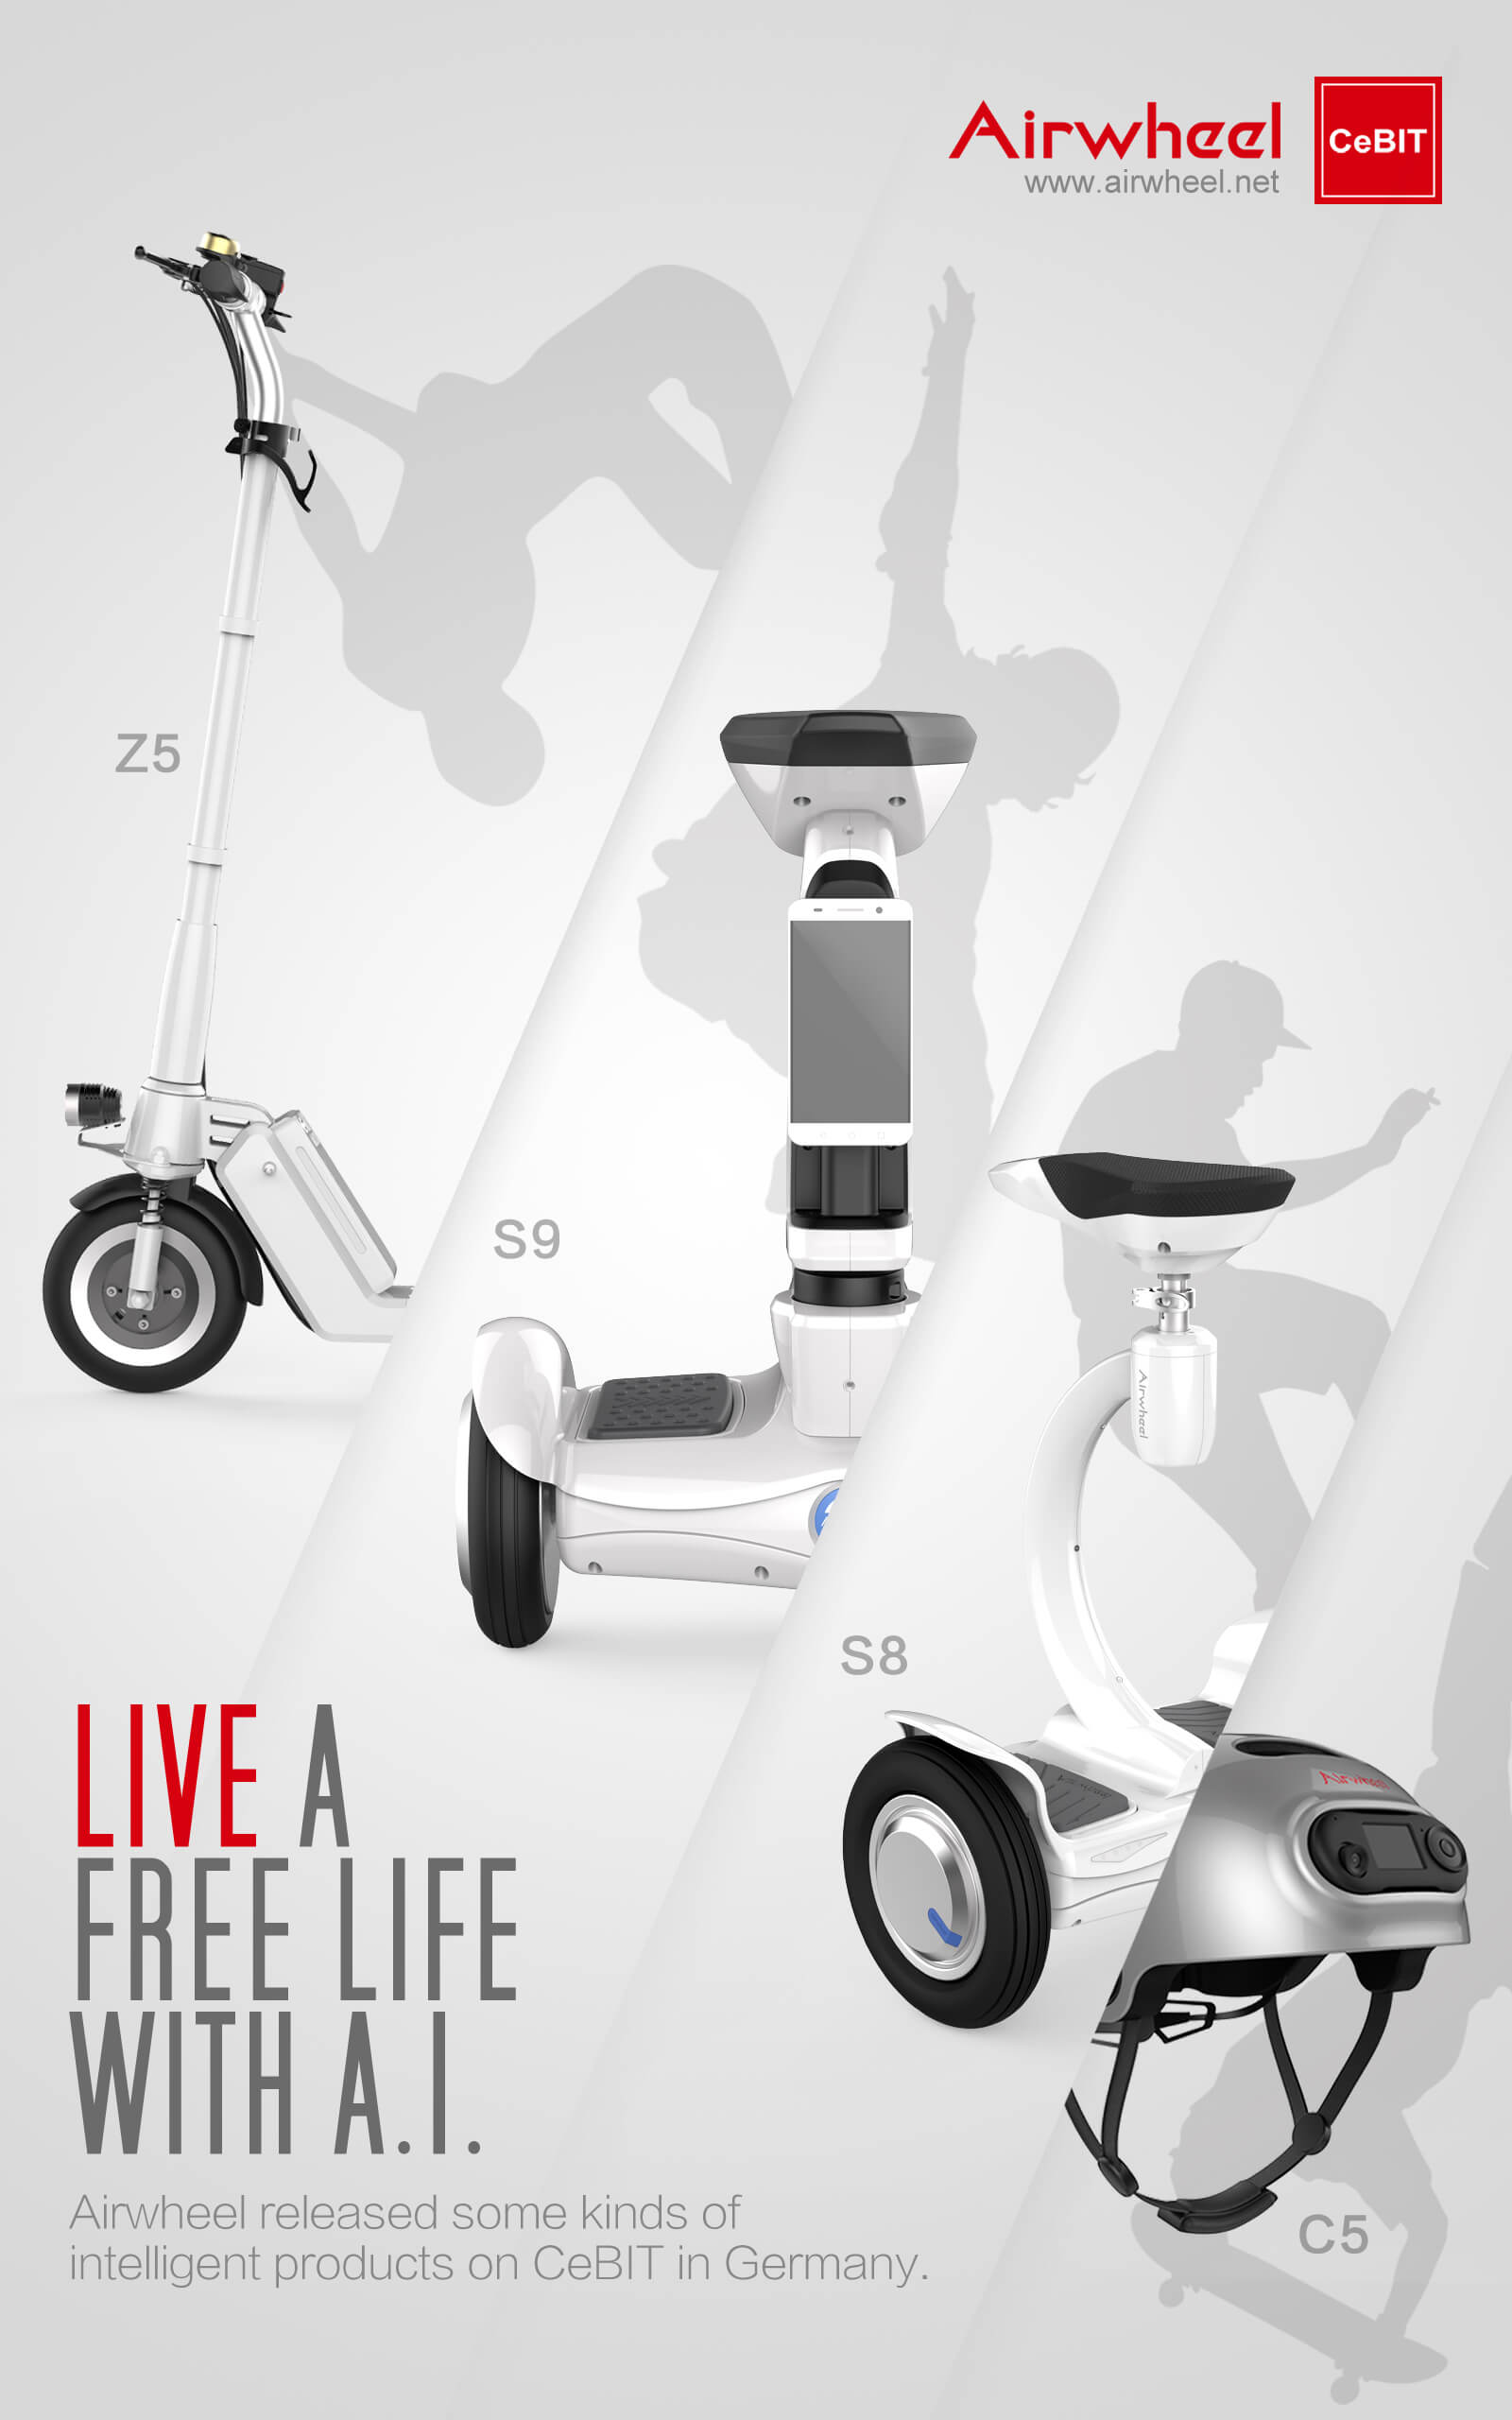 Airwheel balance robot and smart helmets